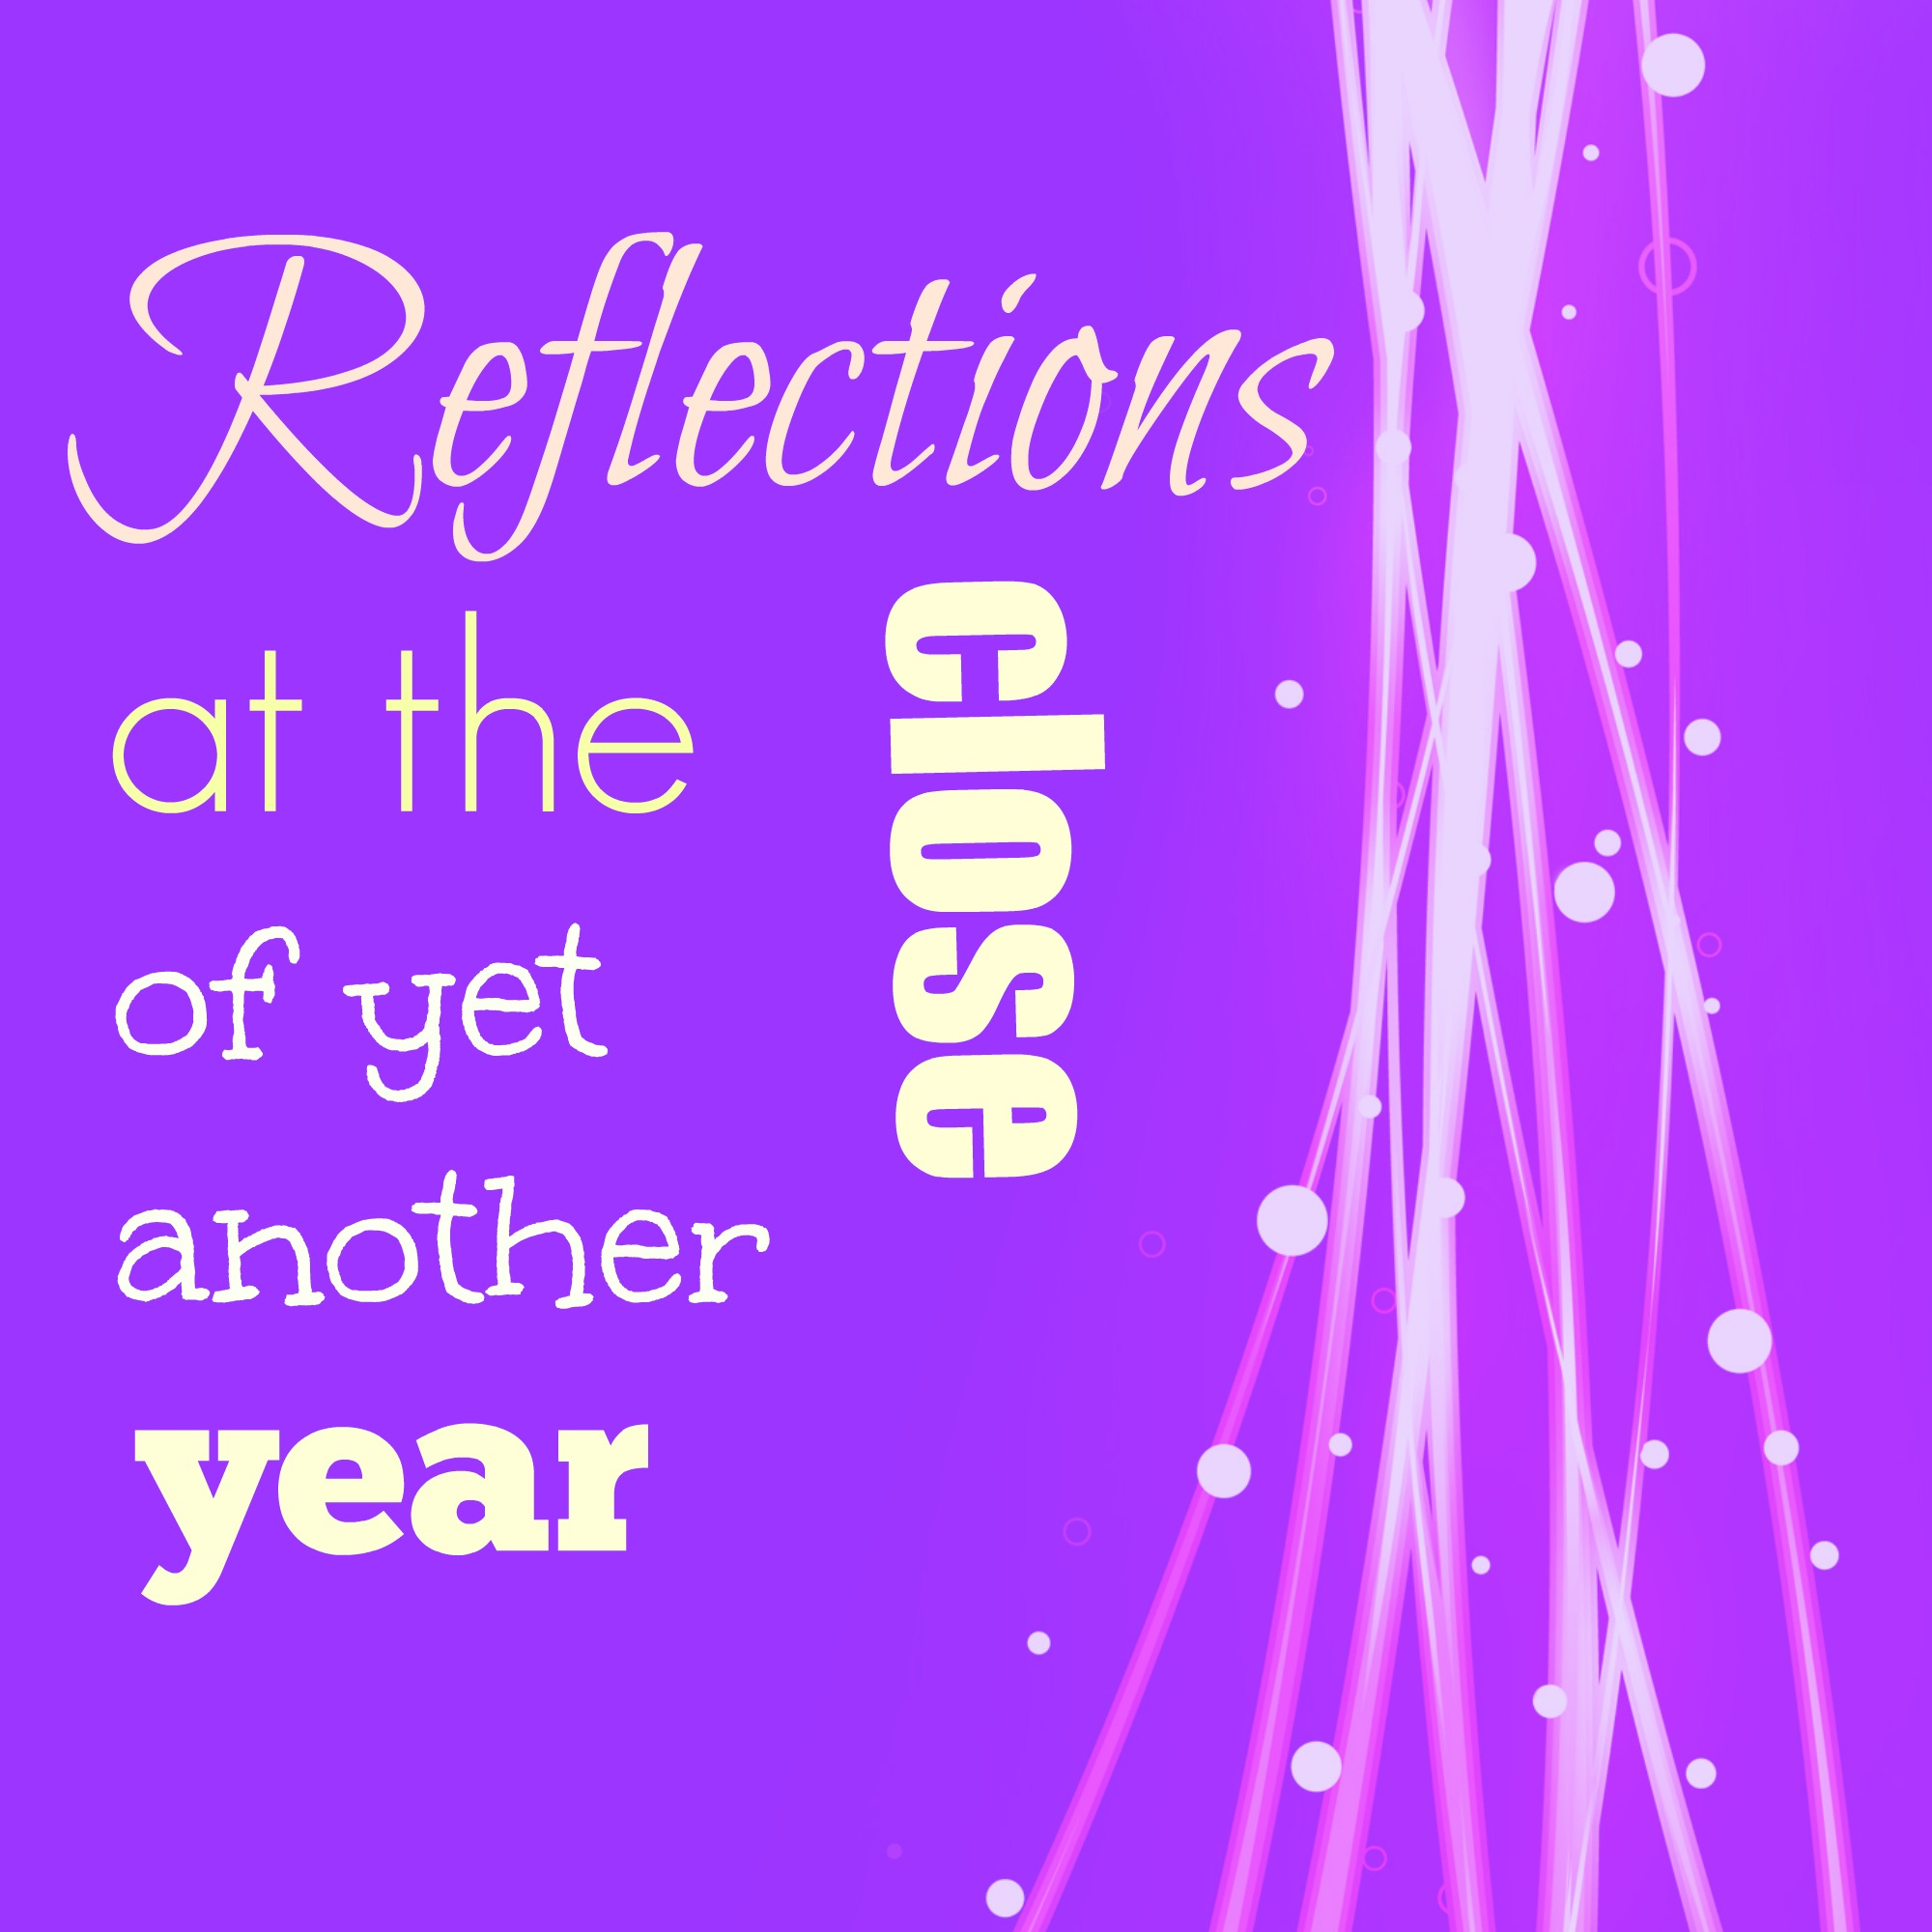 Reflections at the close of yet another year